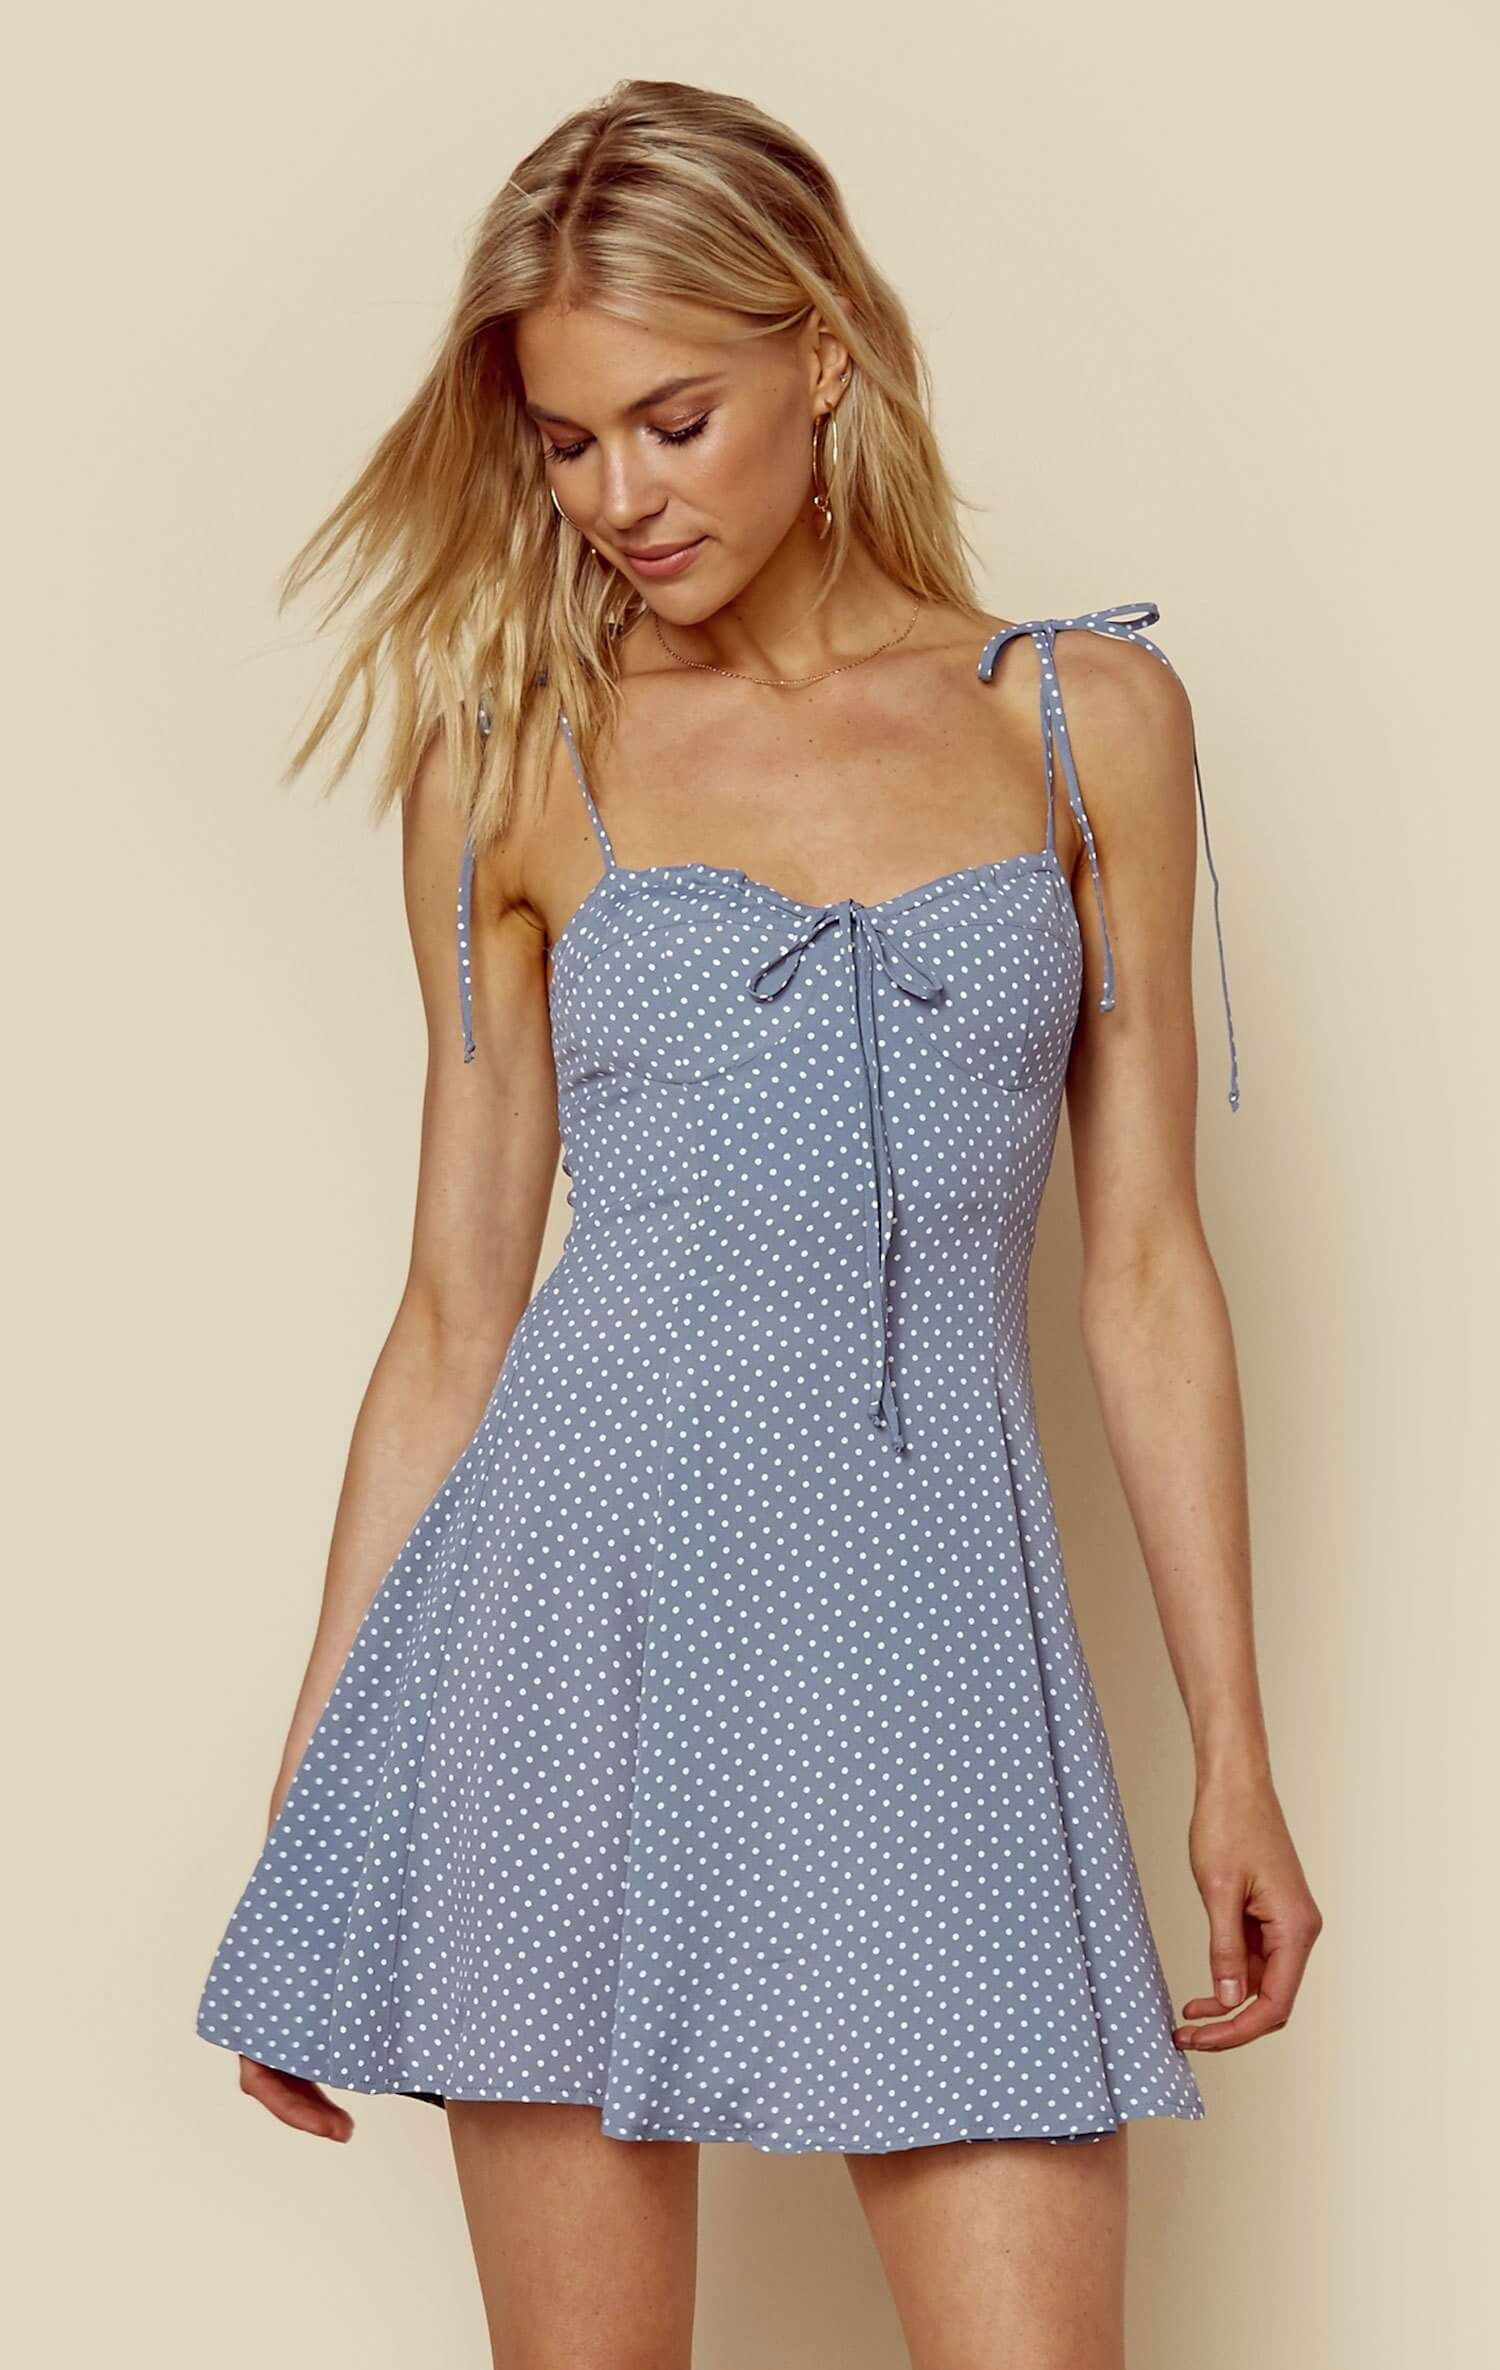 2e499017970 Blue Life's brand new Sienna Corset Dress features a dainty polka dot print  throughout, sweetheart